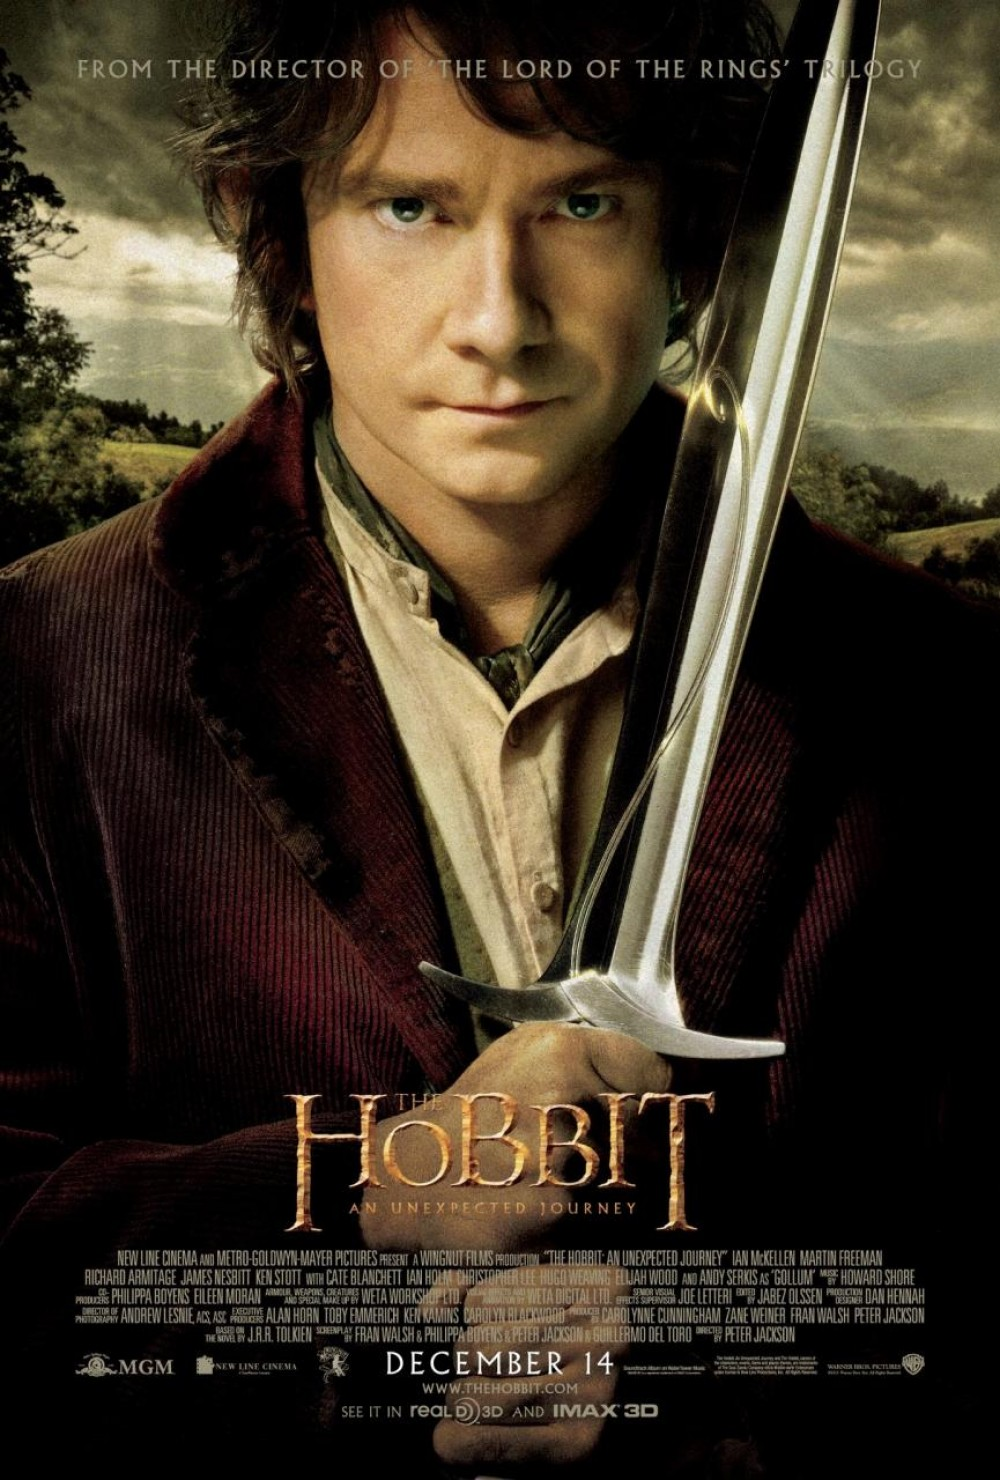 THE HOBBIT: BEKLENMEDIK YOLCULUK 1080P TURKCE DUBLAJ IZLE